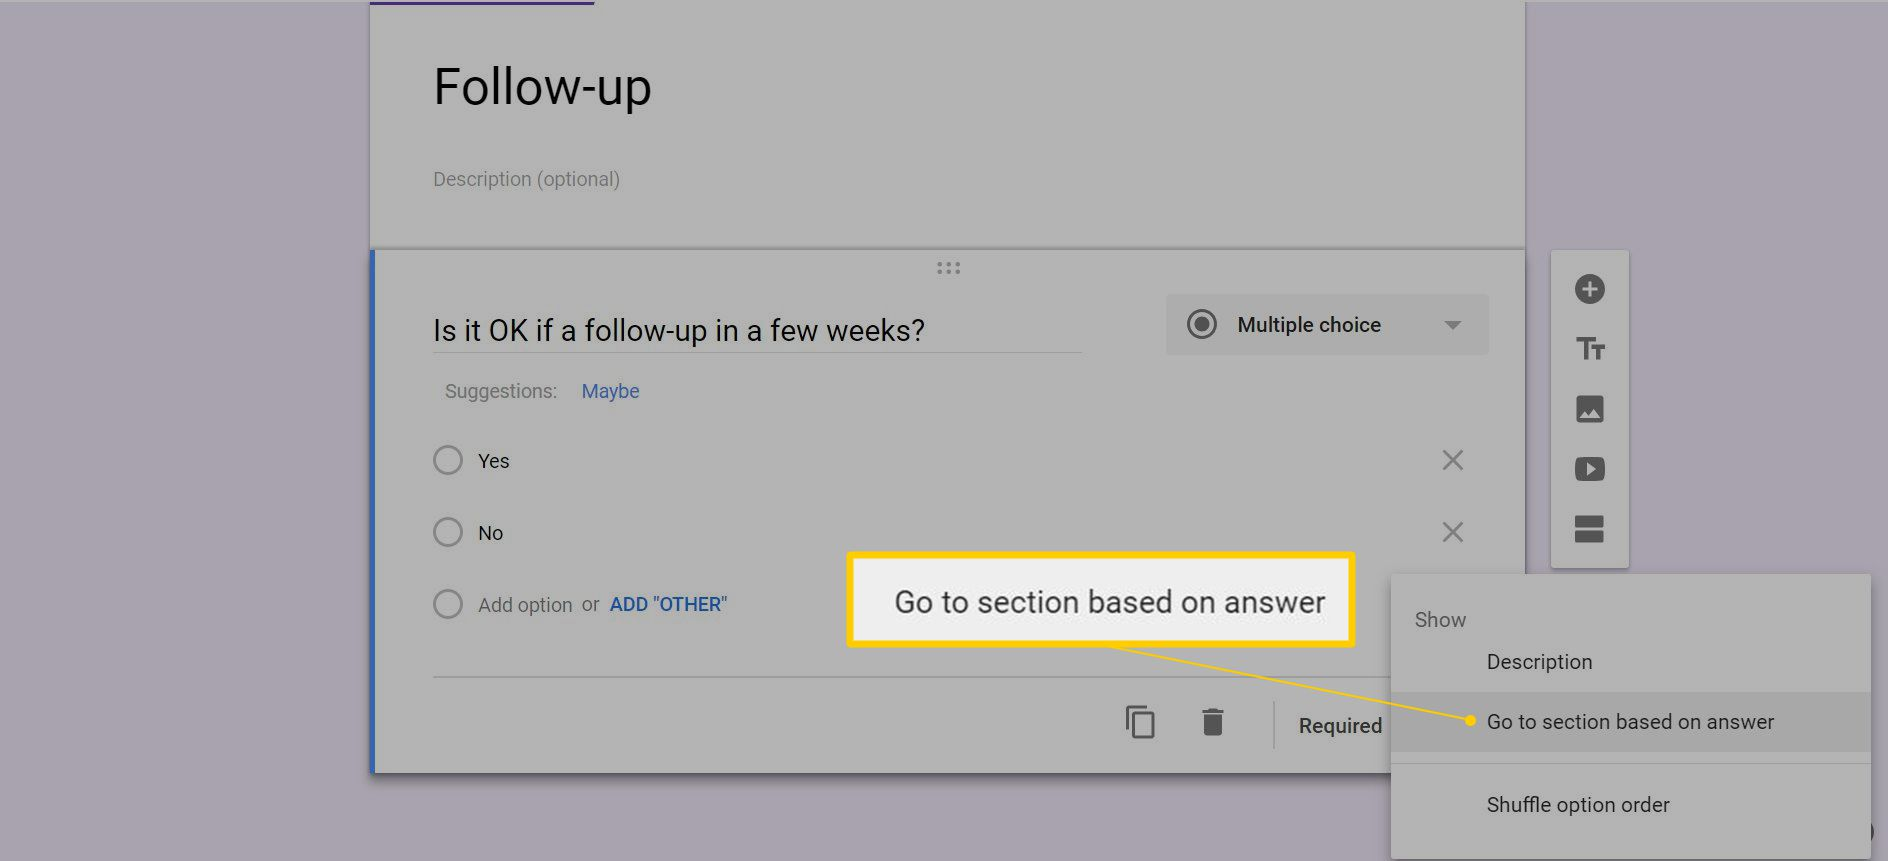 Go to section based on answer option in Google Forms